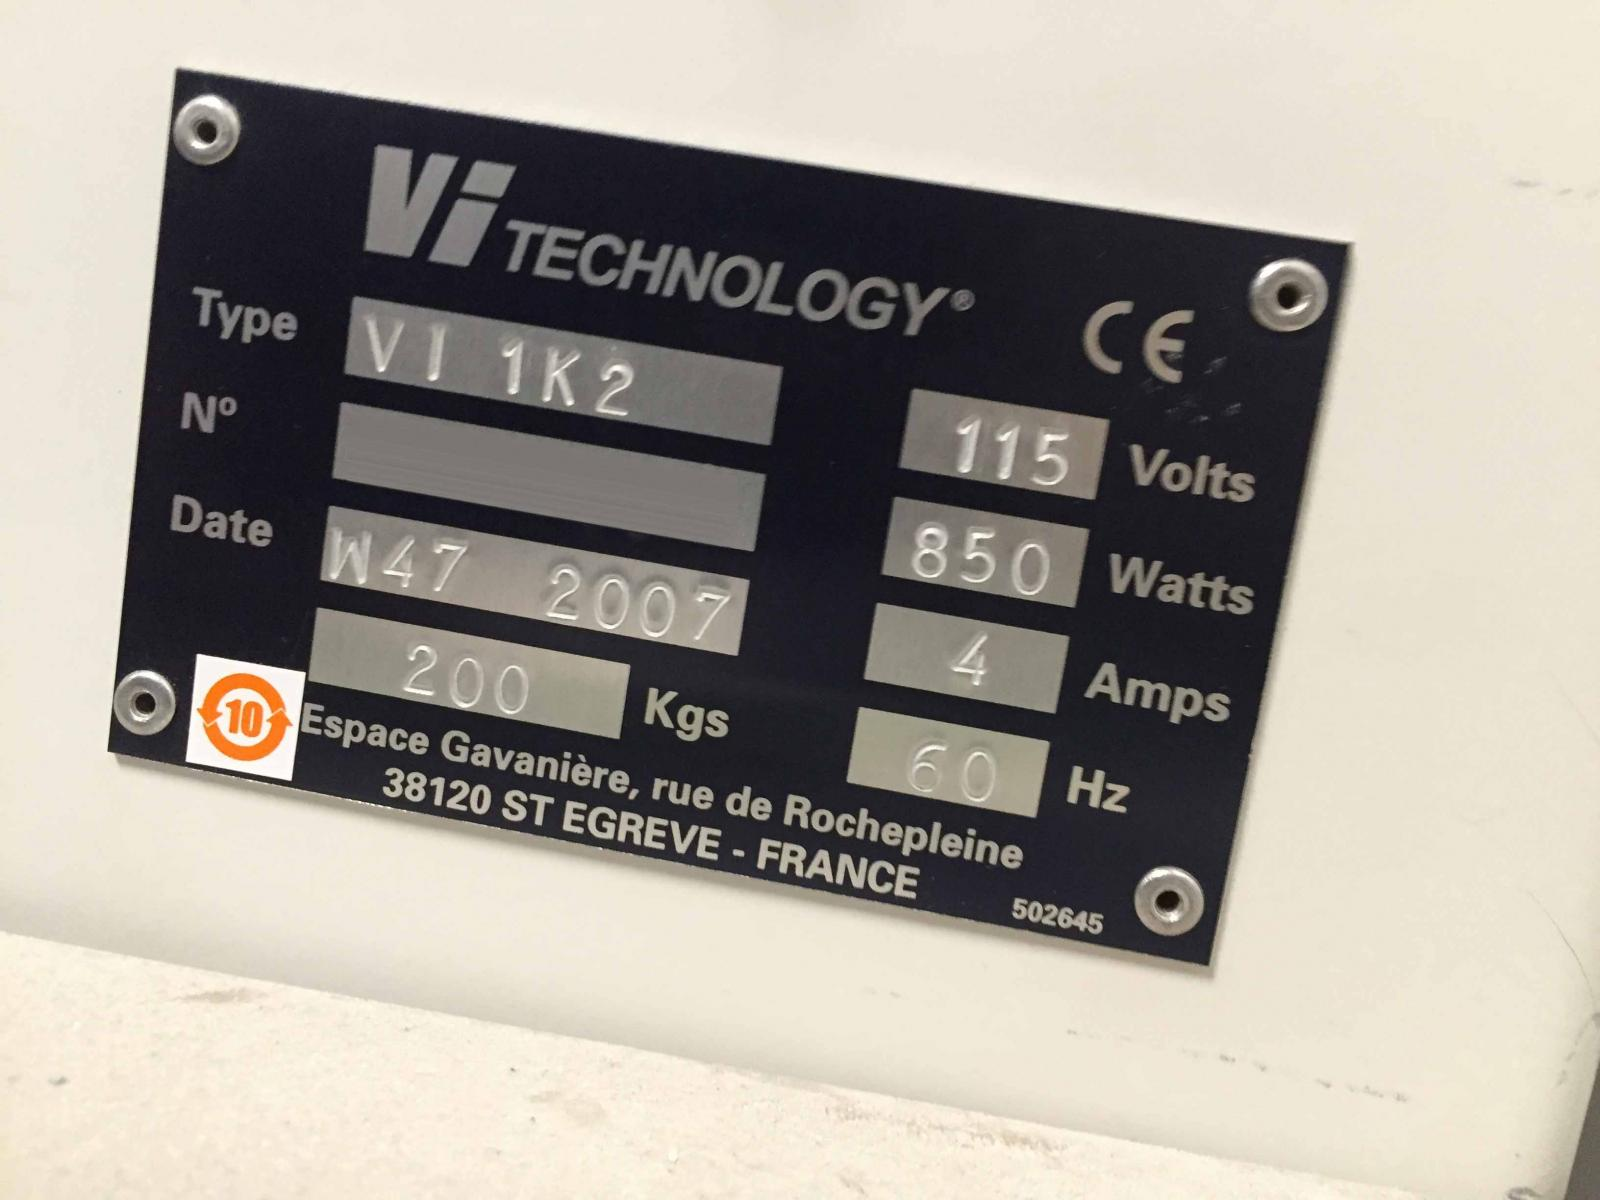 VI TECHNOLOGY Vi 1K2 used for sale price #9177309 > buy from CAE